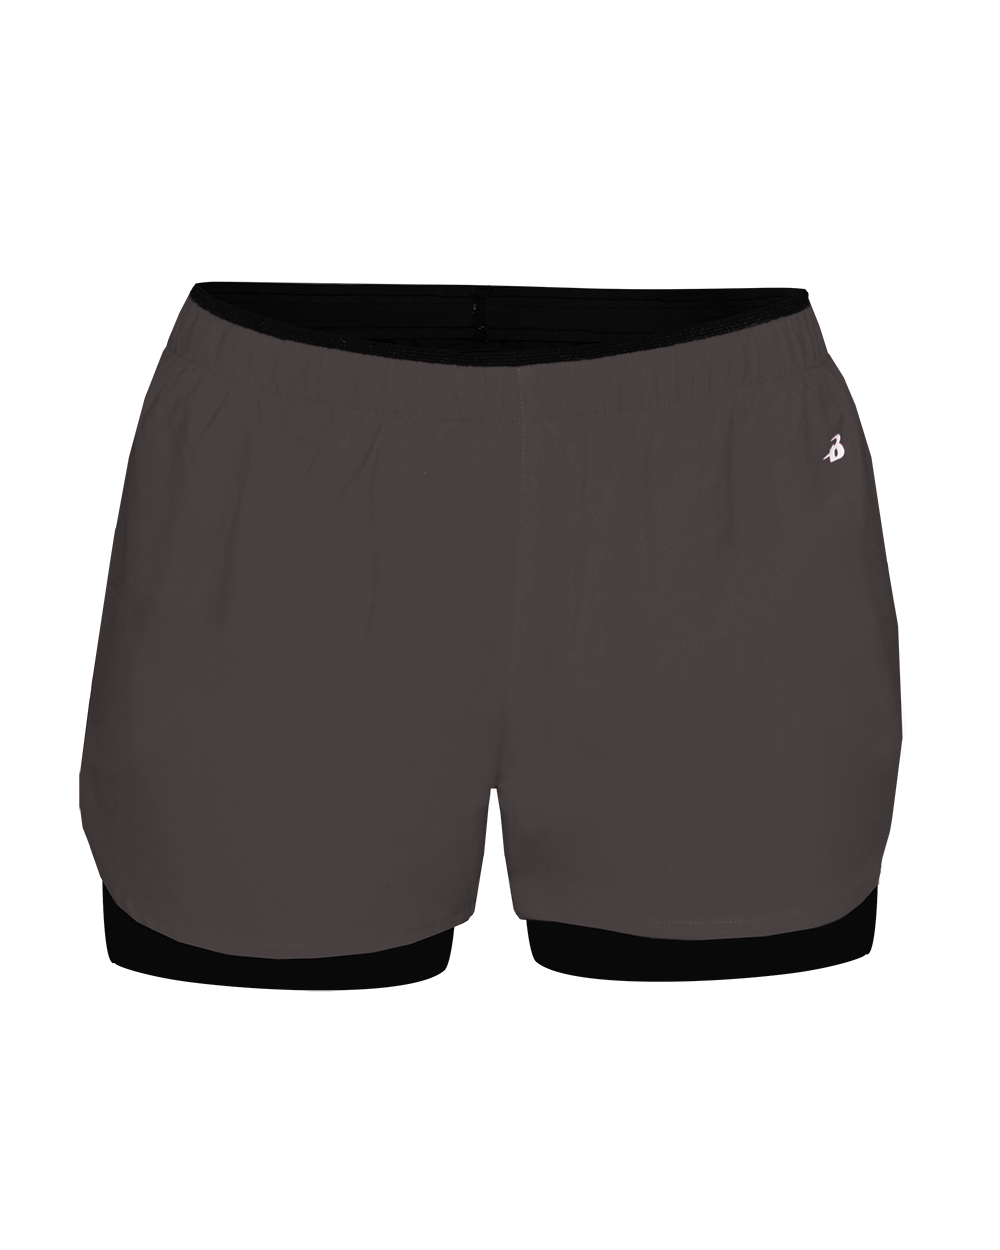 Double Up Women's Short - Graphite/Black